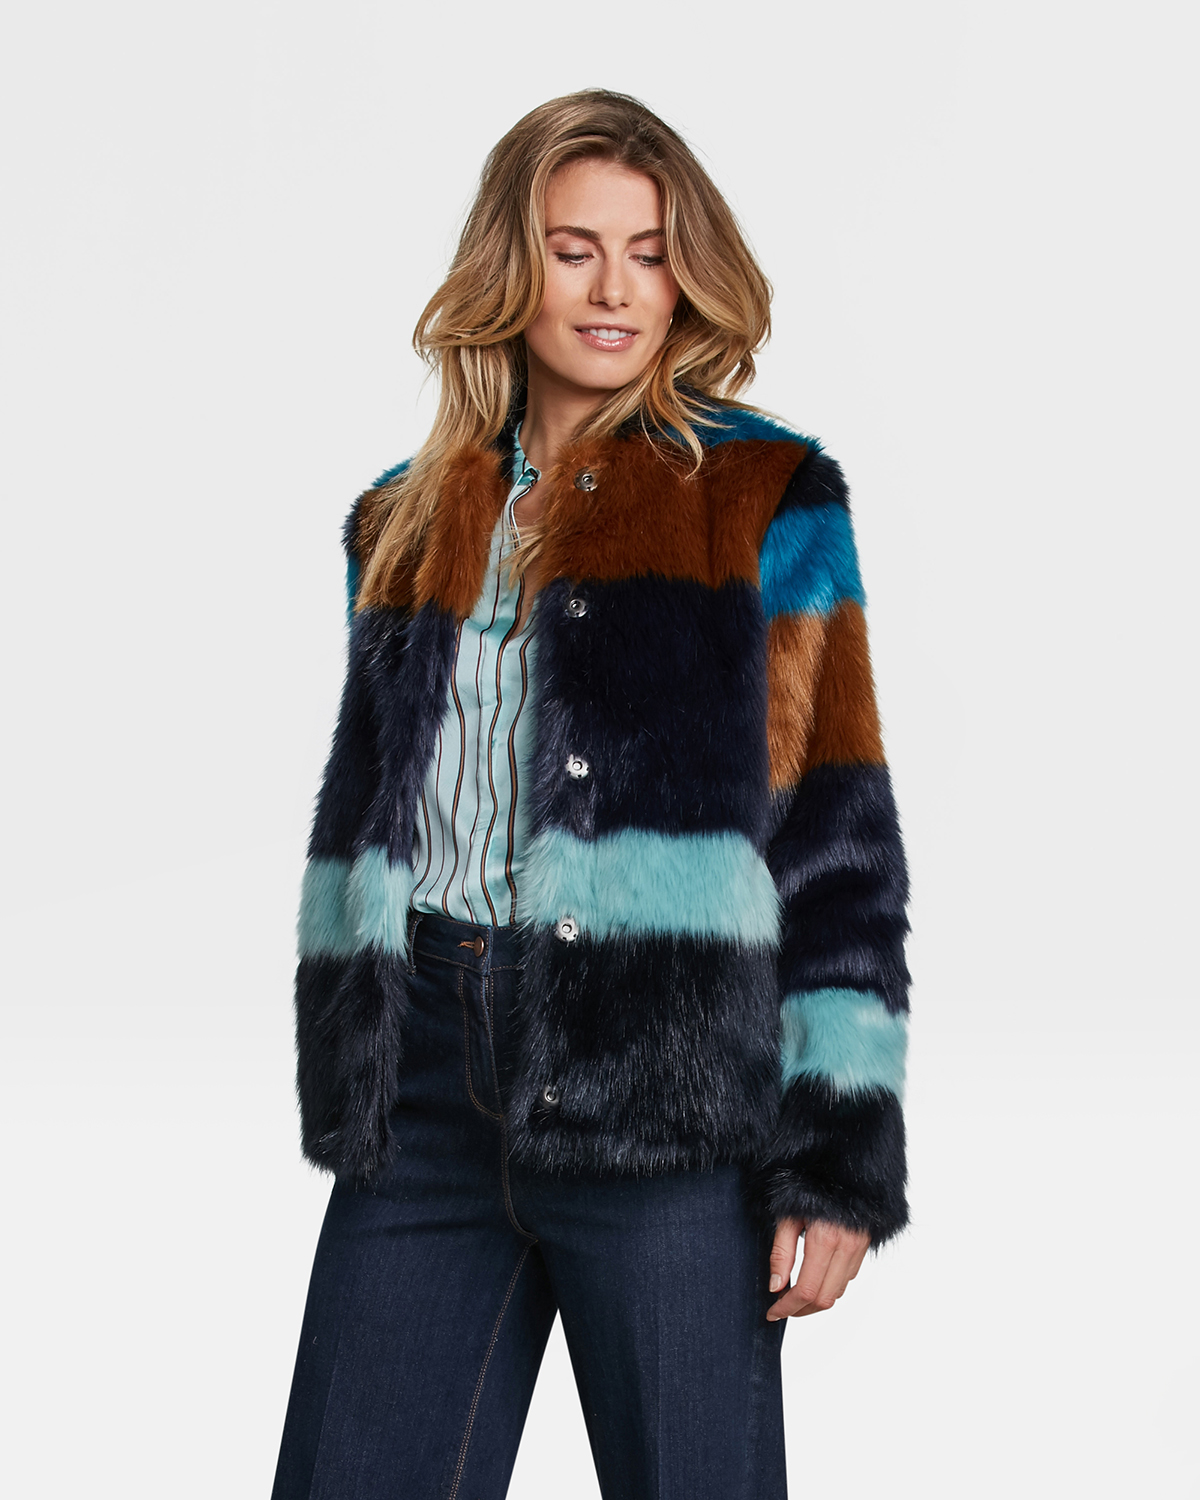 MANTEAU FAUSSE FOURRURE FEMME | 85446175 WE Fashion